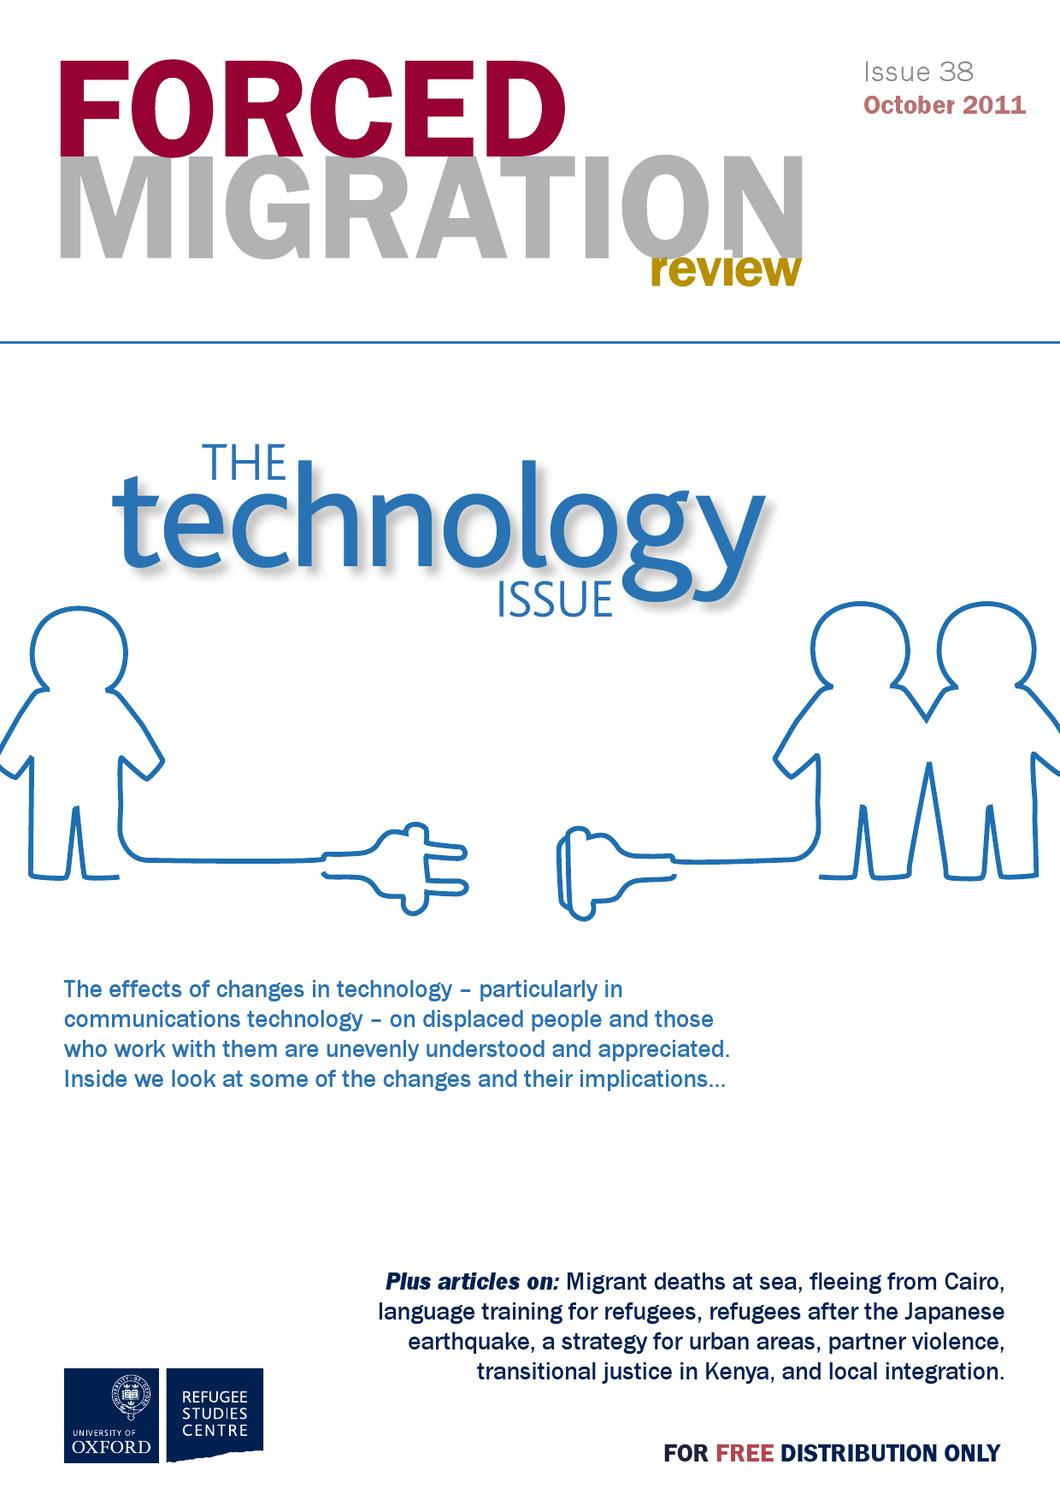 forced migration review issue 38 by forced migration review issuu rh issuu com